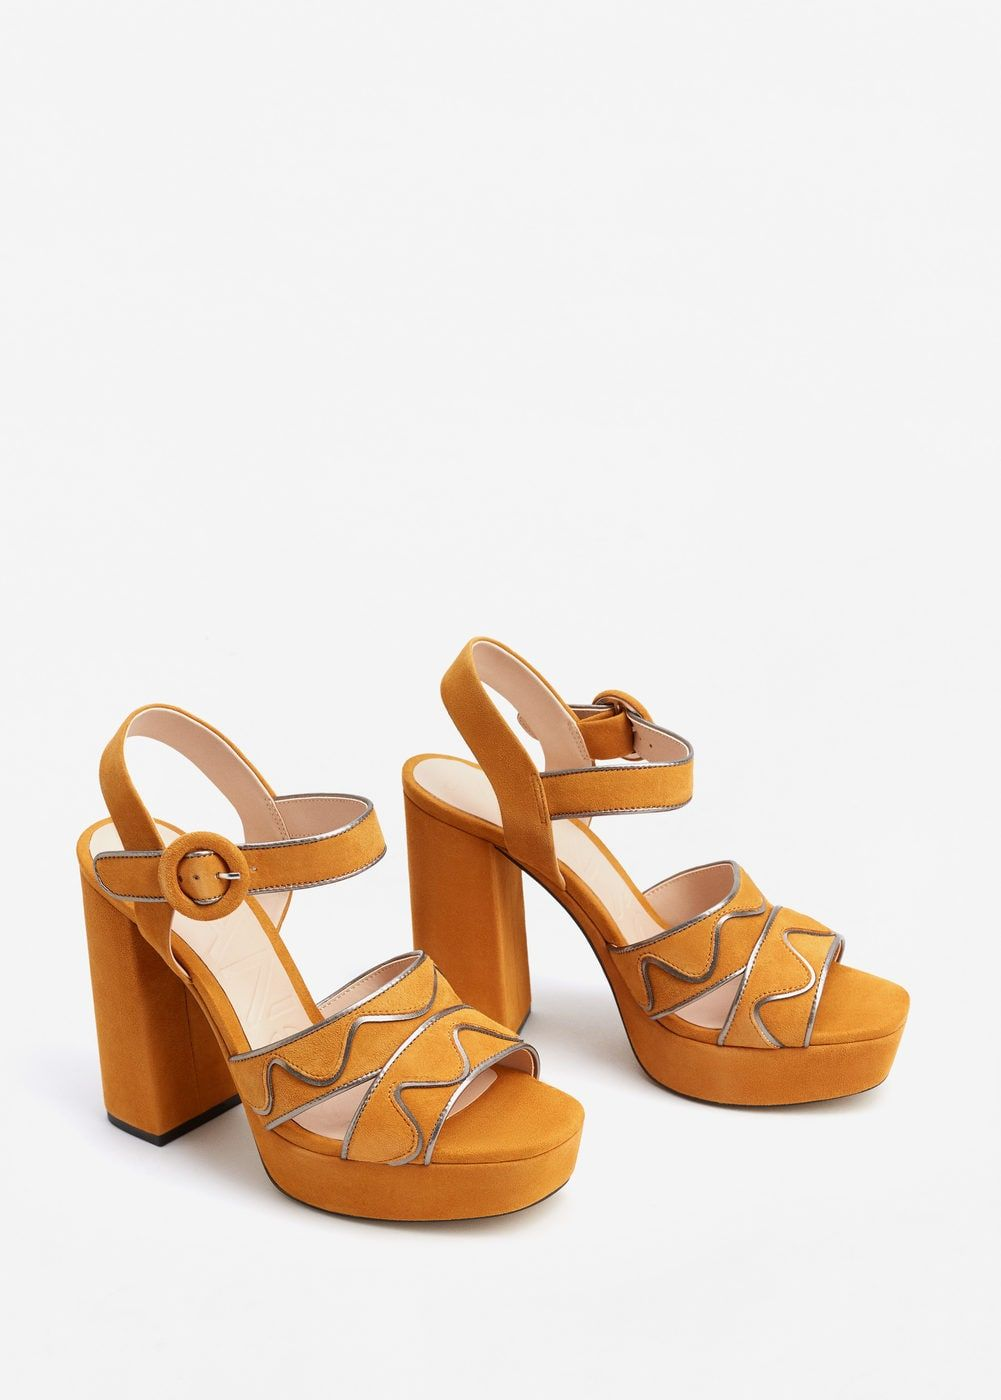 66354a35f74 Platform leather sandals - Women